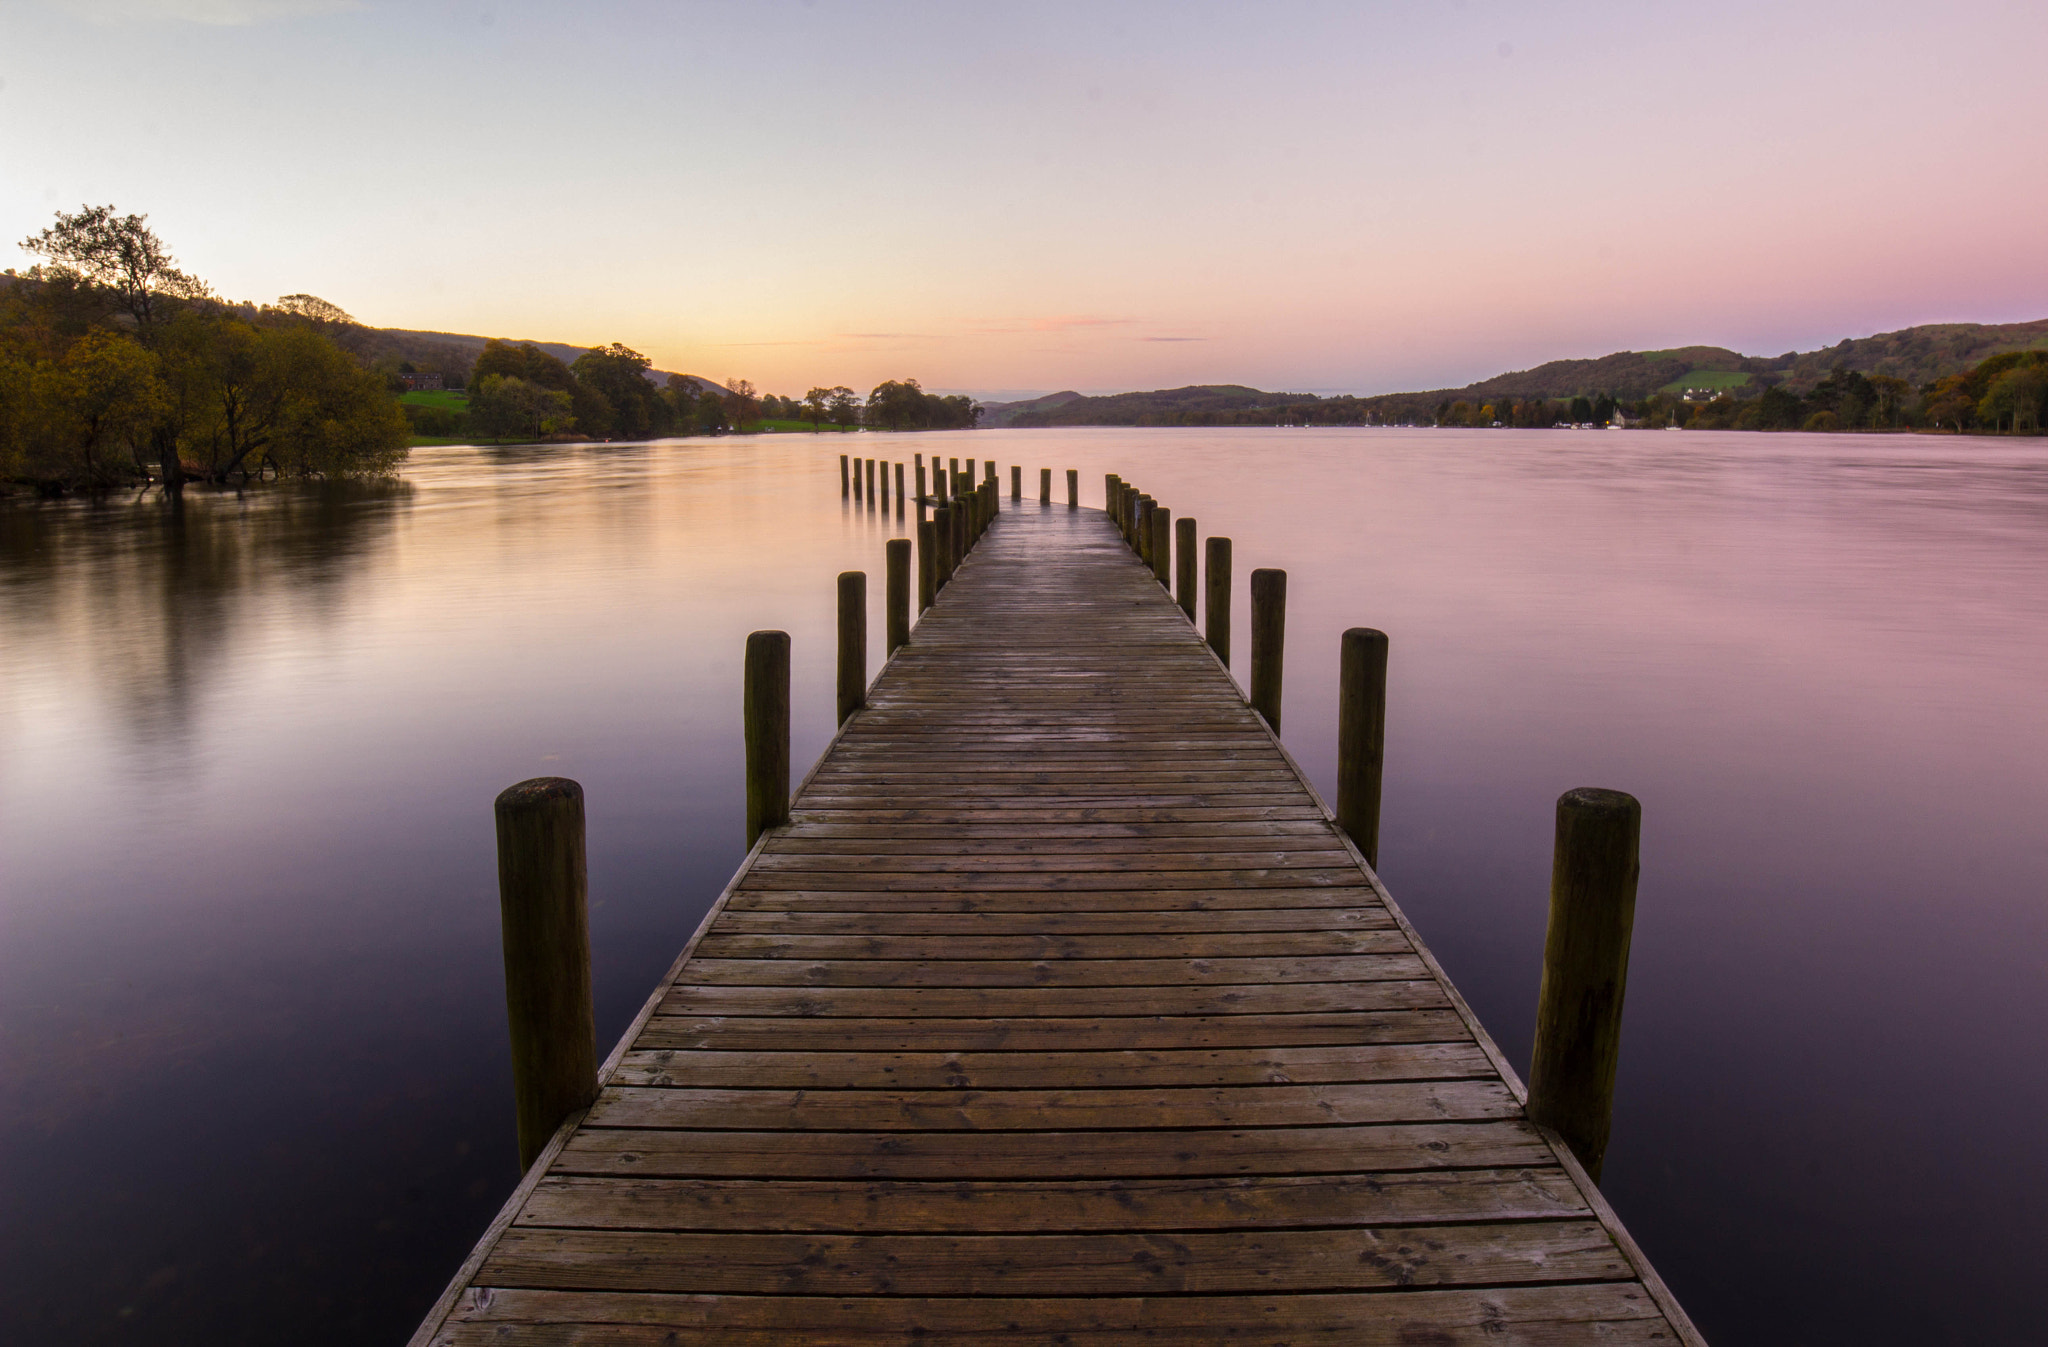 Photograph Sunrise at Coniston Lake by Dan James on 500px